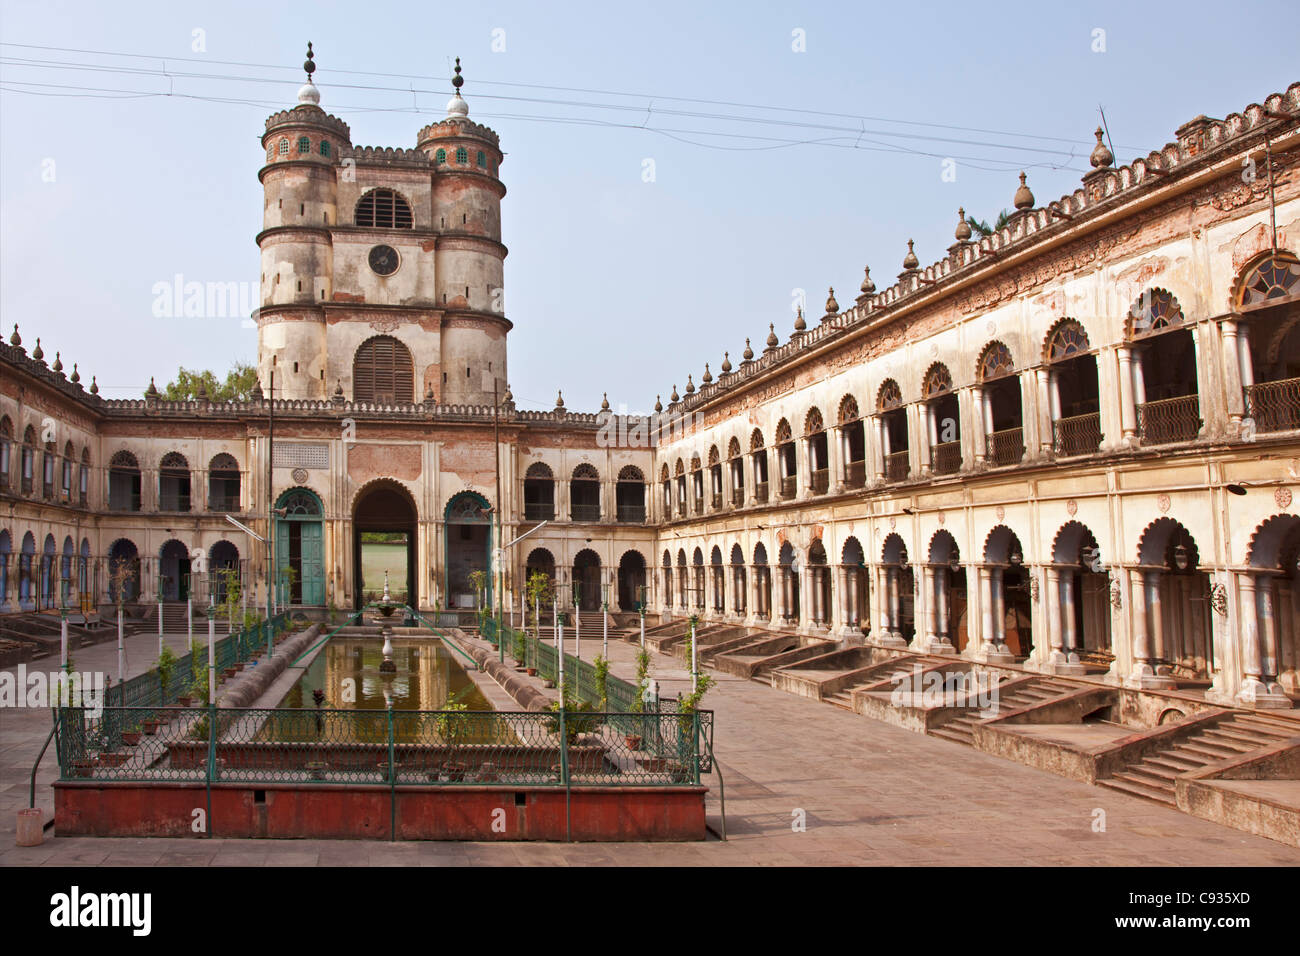 Lying 35 miles north of Kolkata  on the banks of the Hooghly River is the impressive Hugli Imambara building. Stock Photo